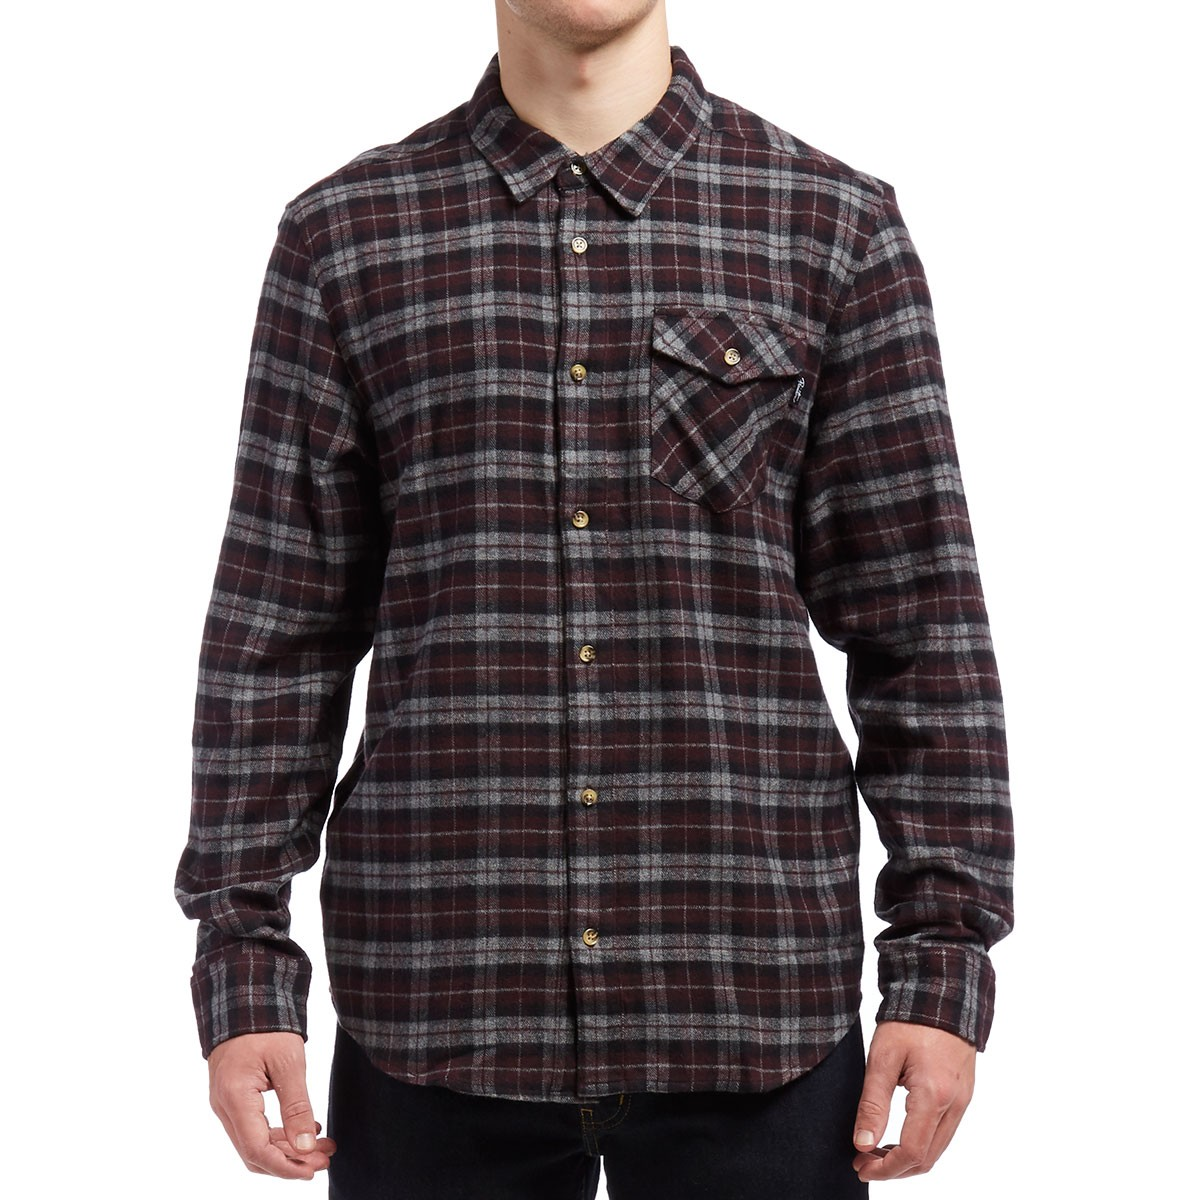 Primitive philly heather flannel shirt burgundy plaid for Best flannel shirt brands